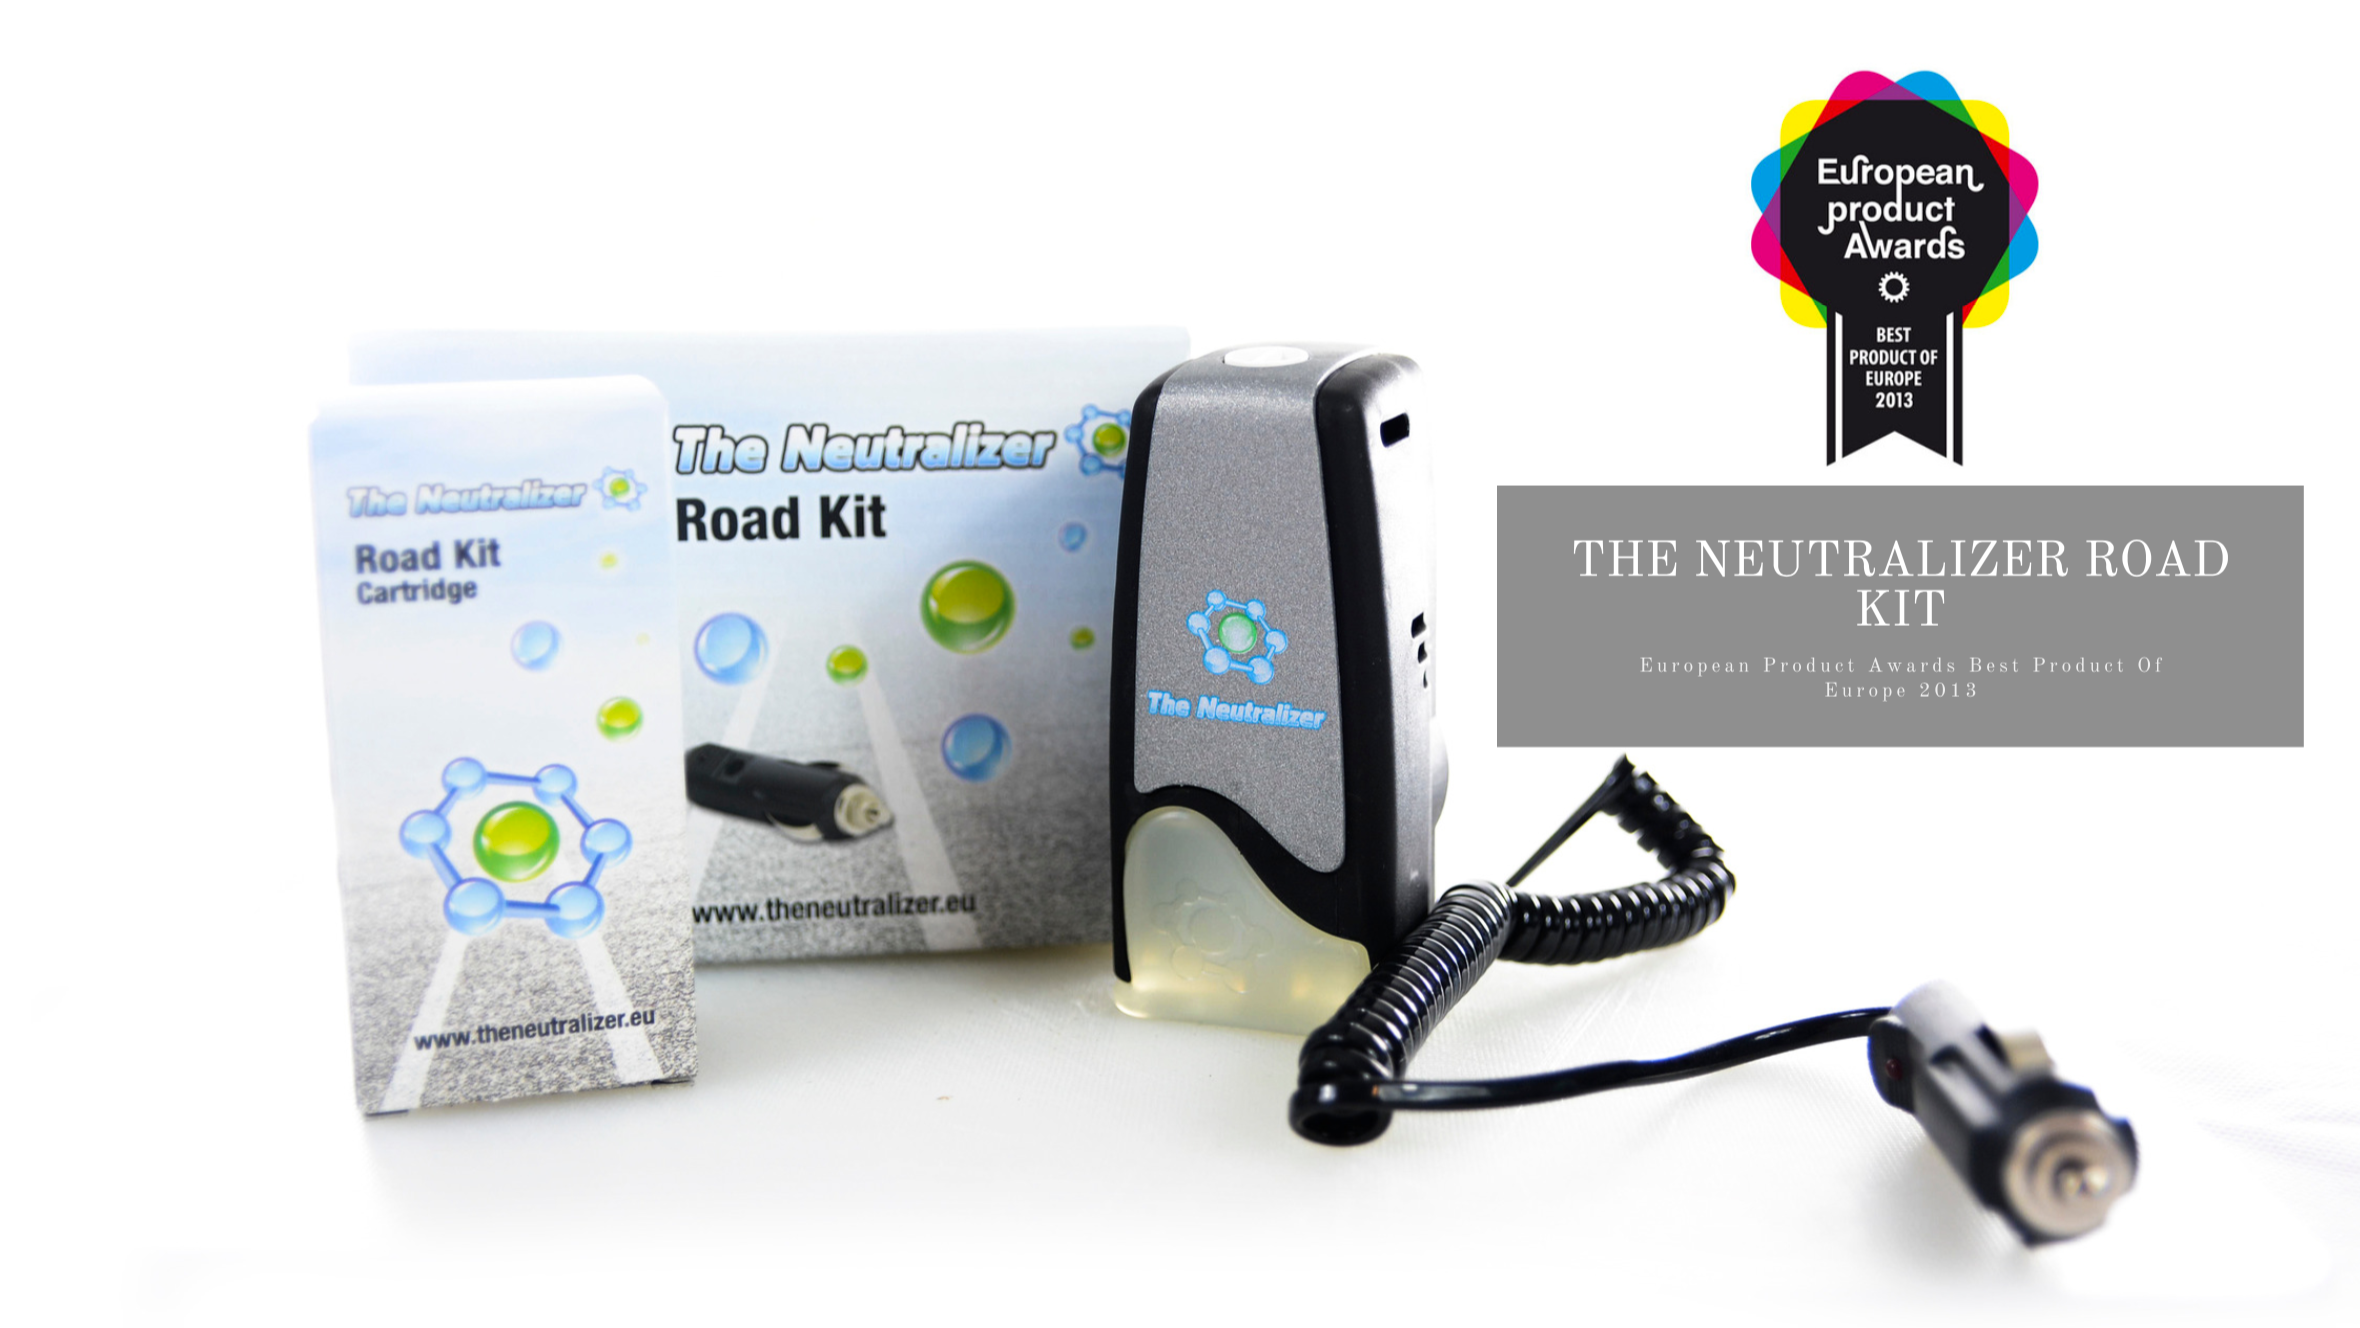 The Neutralizer Road Kit